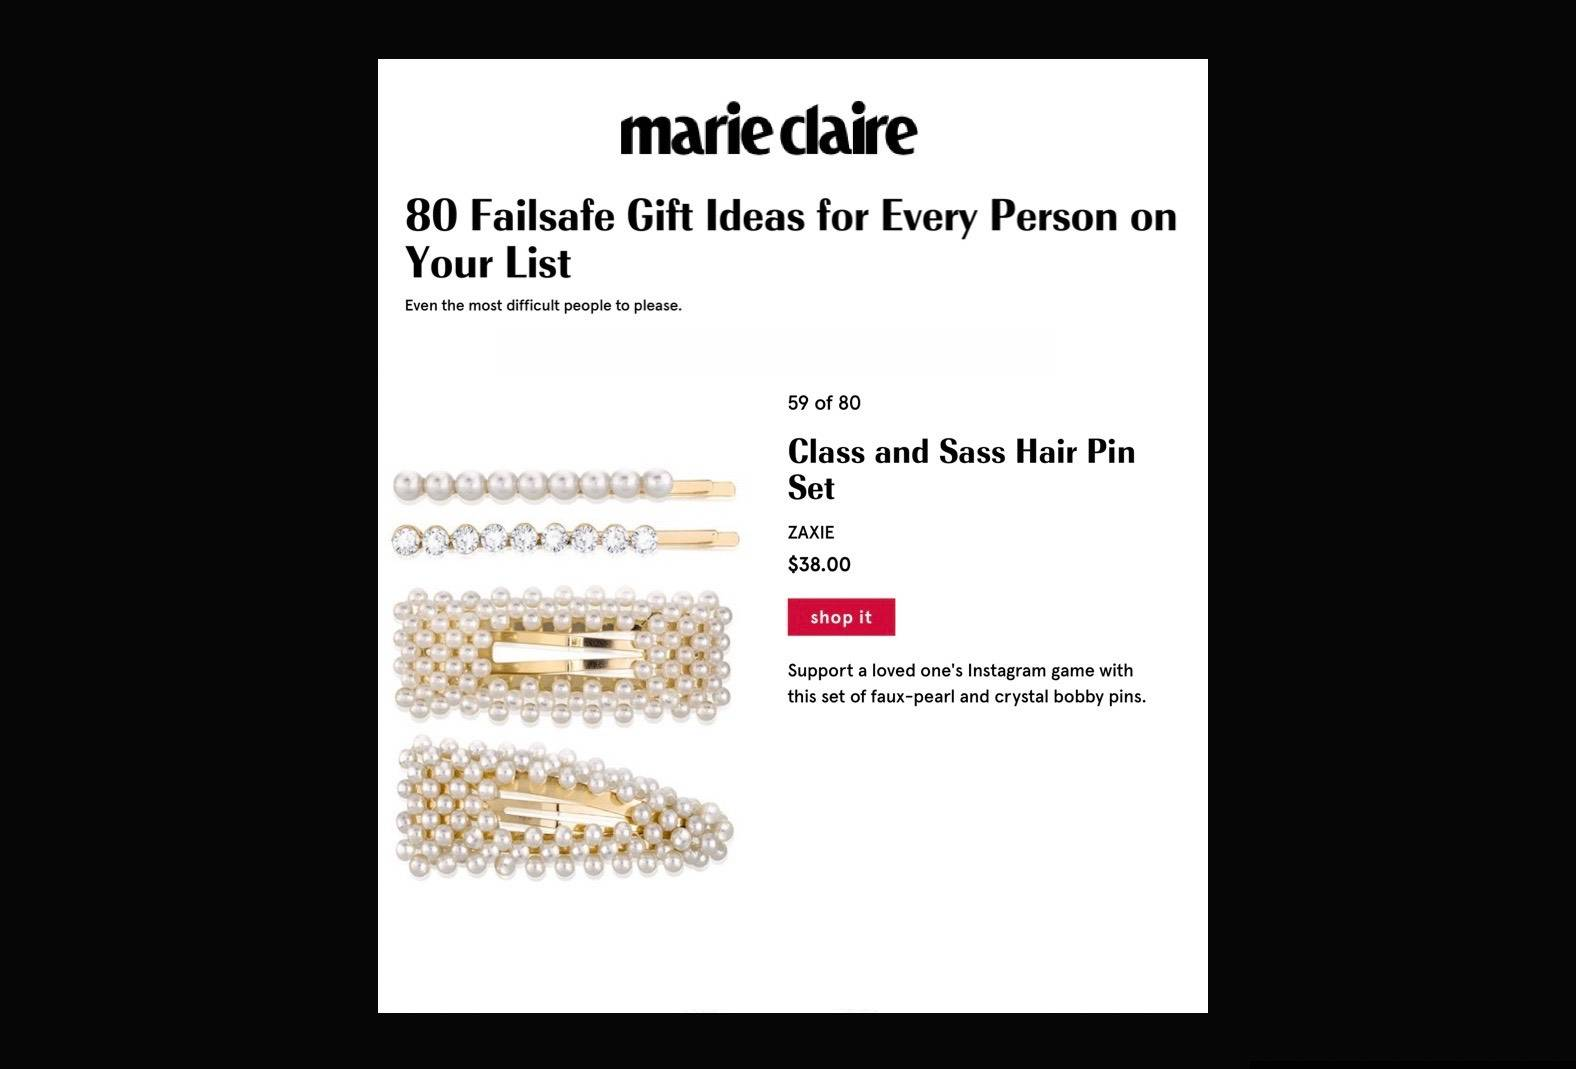 ZAXIE Class And Sass Hair Pin Set on MarieClaire.com